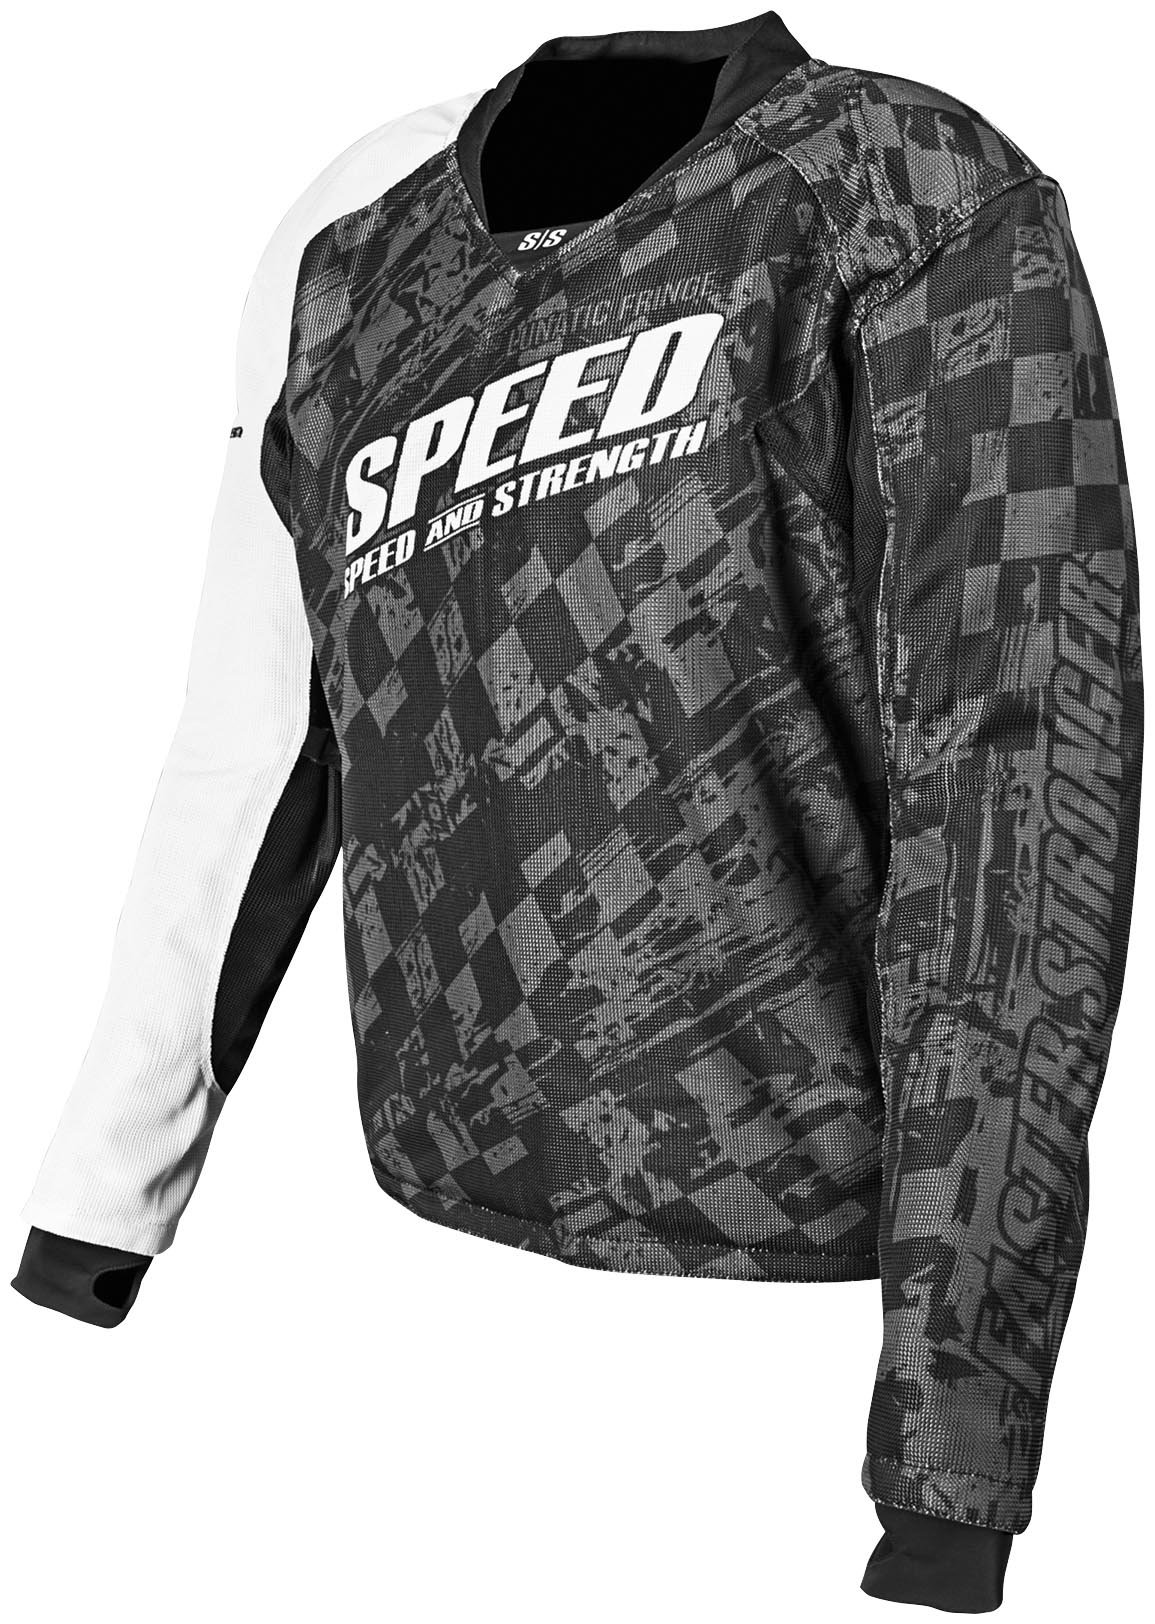 SPEED AND STRENGTH Lunatic Fringe Mesh Armored Jersey Black LG 87-8135